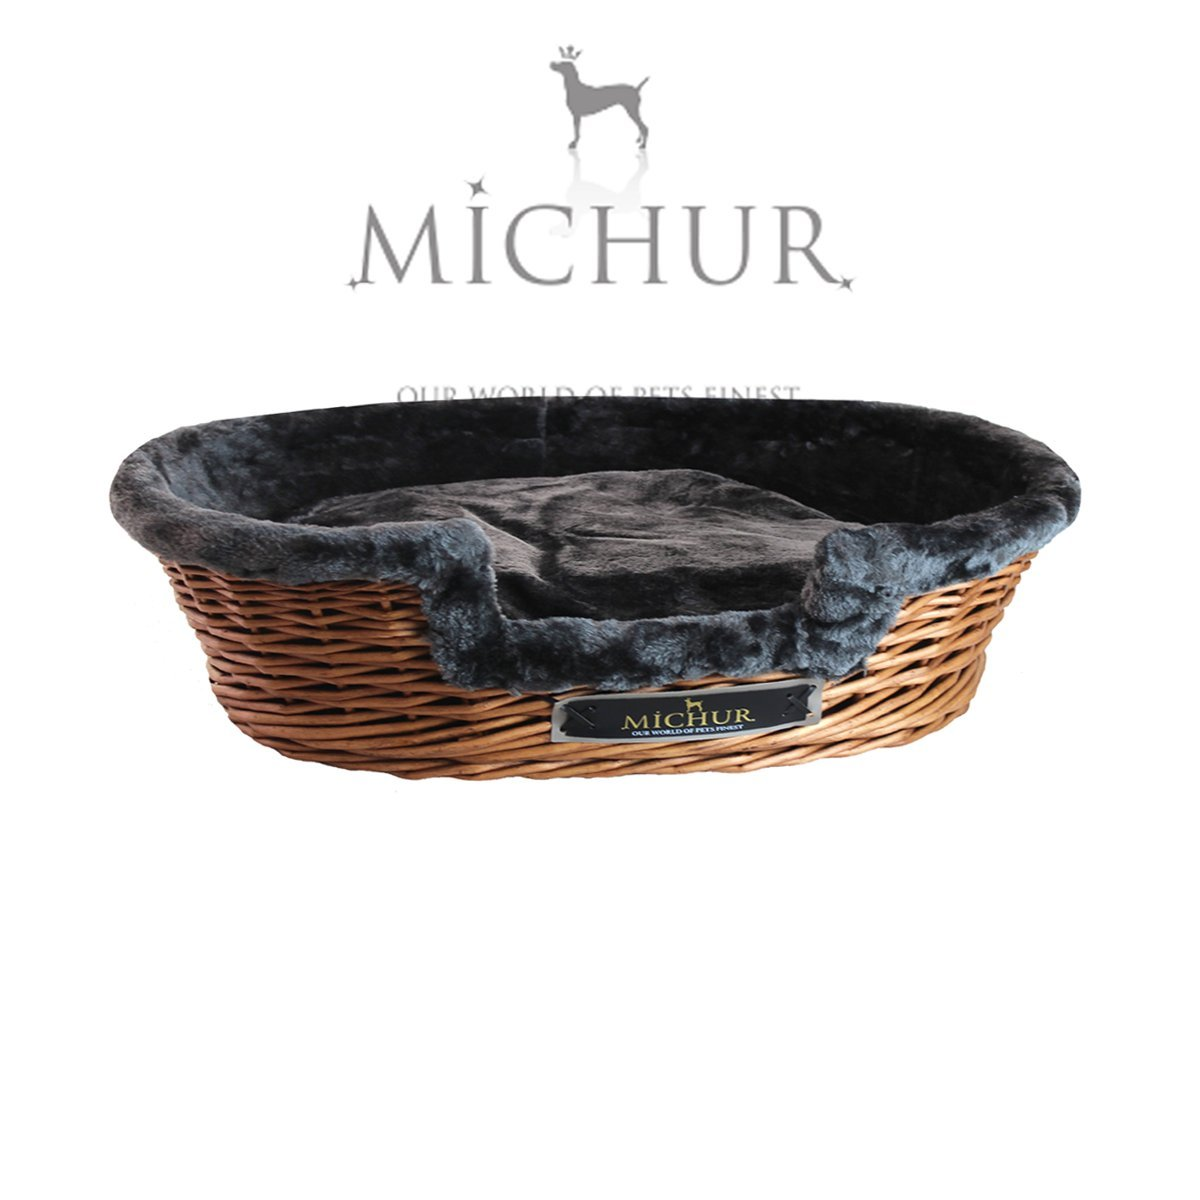 (approx.)  31.50\ MICHUR LUMPI TOBACCO, dog bed, dog basket, cat bed willow, dog basket rattan, cat basket, willow, rattan, TOBACCO